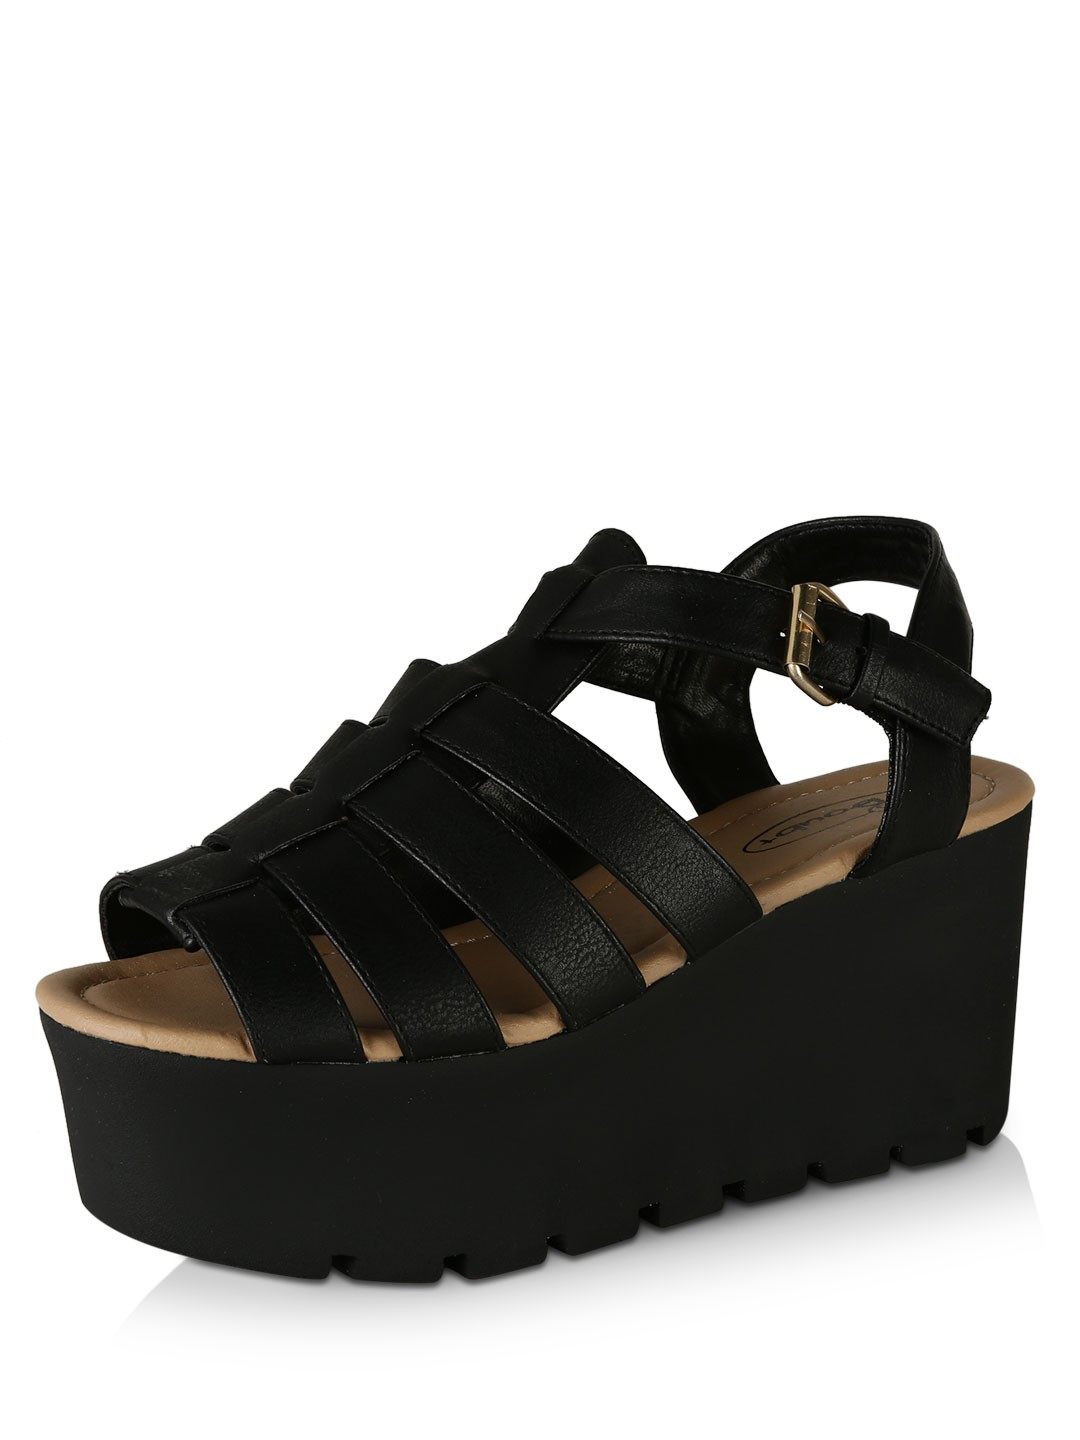 Buy No Doubt Cleated Sole Cage Flatform Sandals For Women